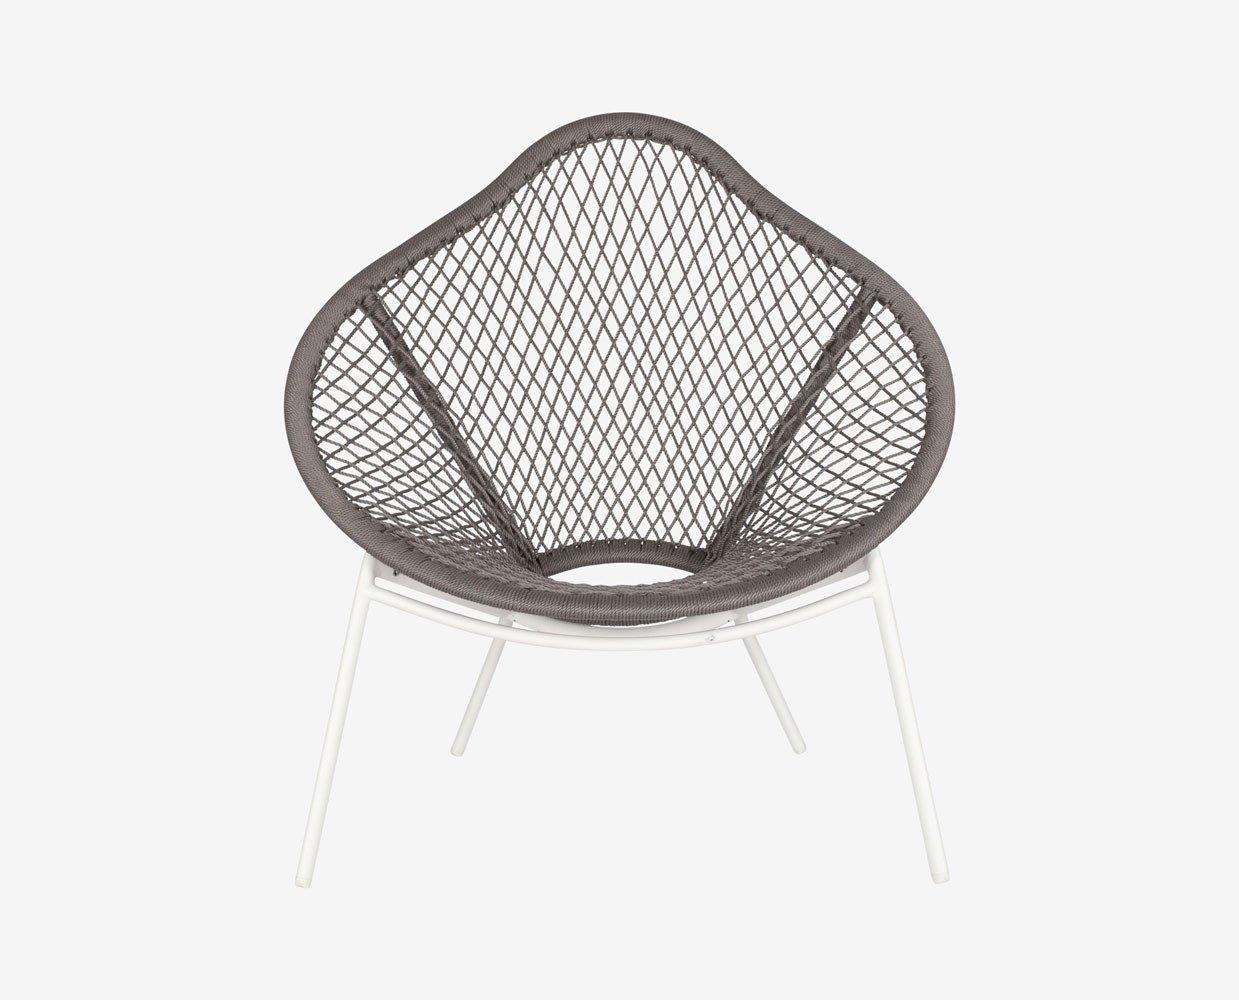 Phenomenal Inula Lounge Chair Garden Lounge Chairs Contemporary Lamtechconsult Wood Chair Design Ideas Lamtechconsultcom